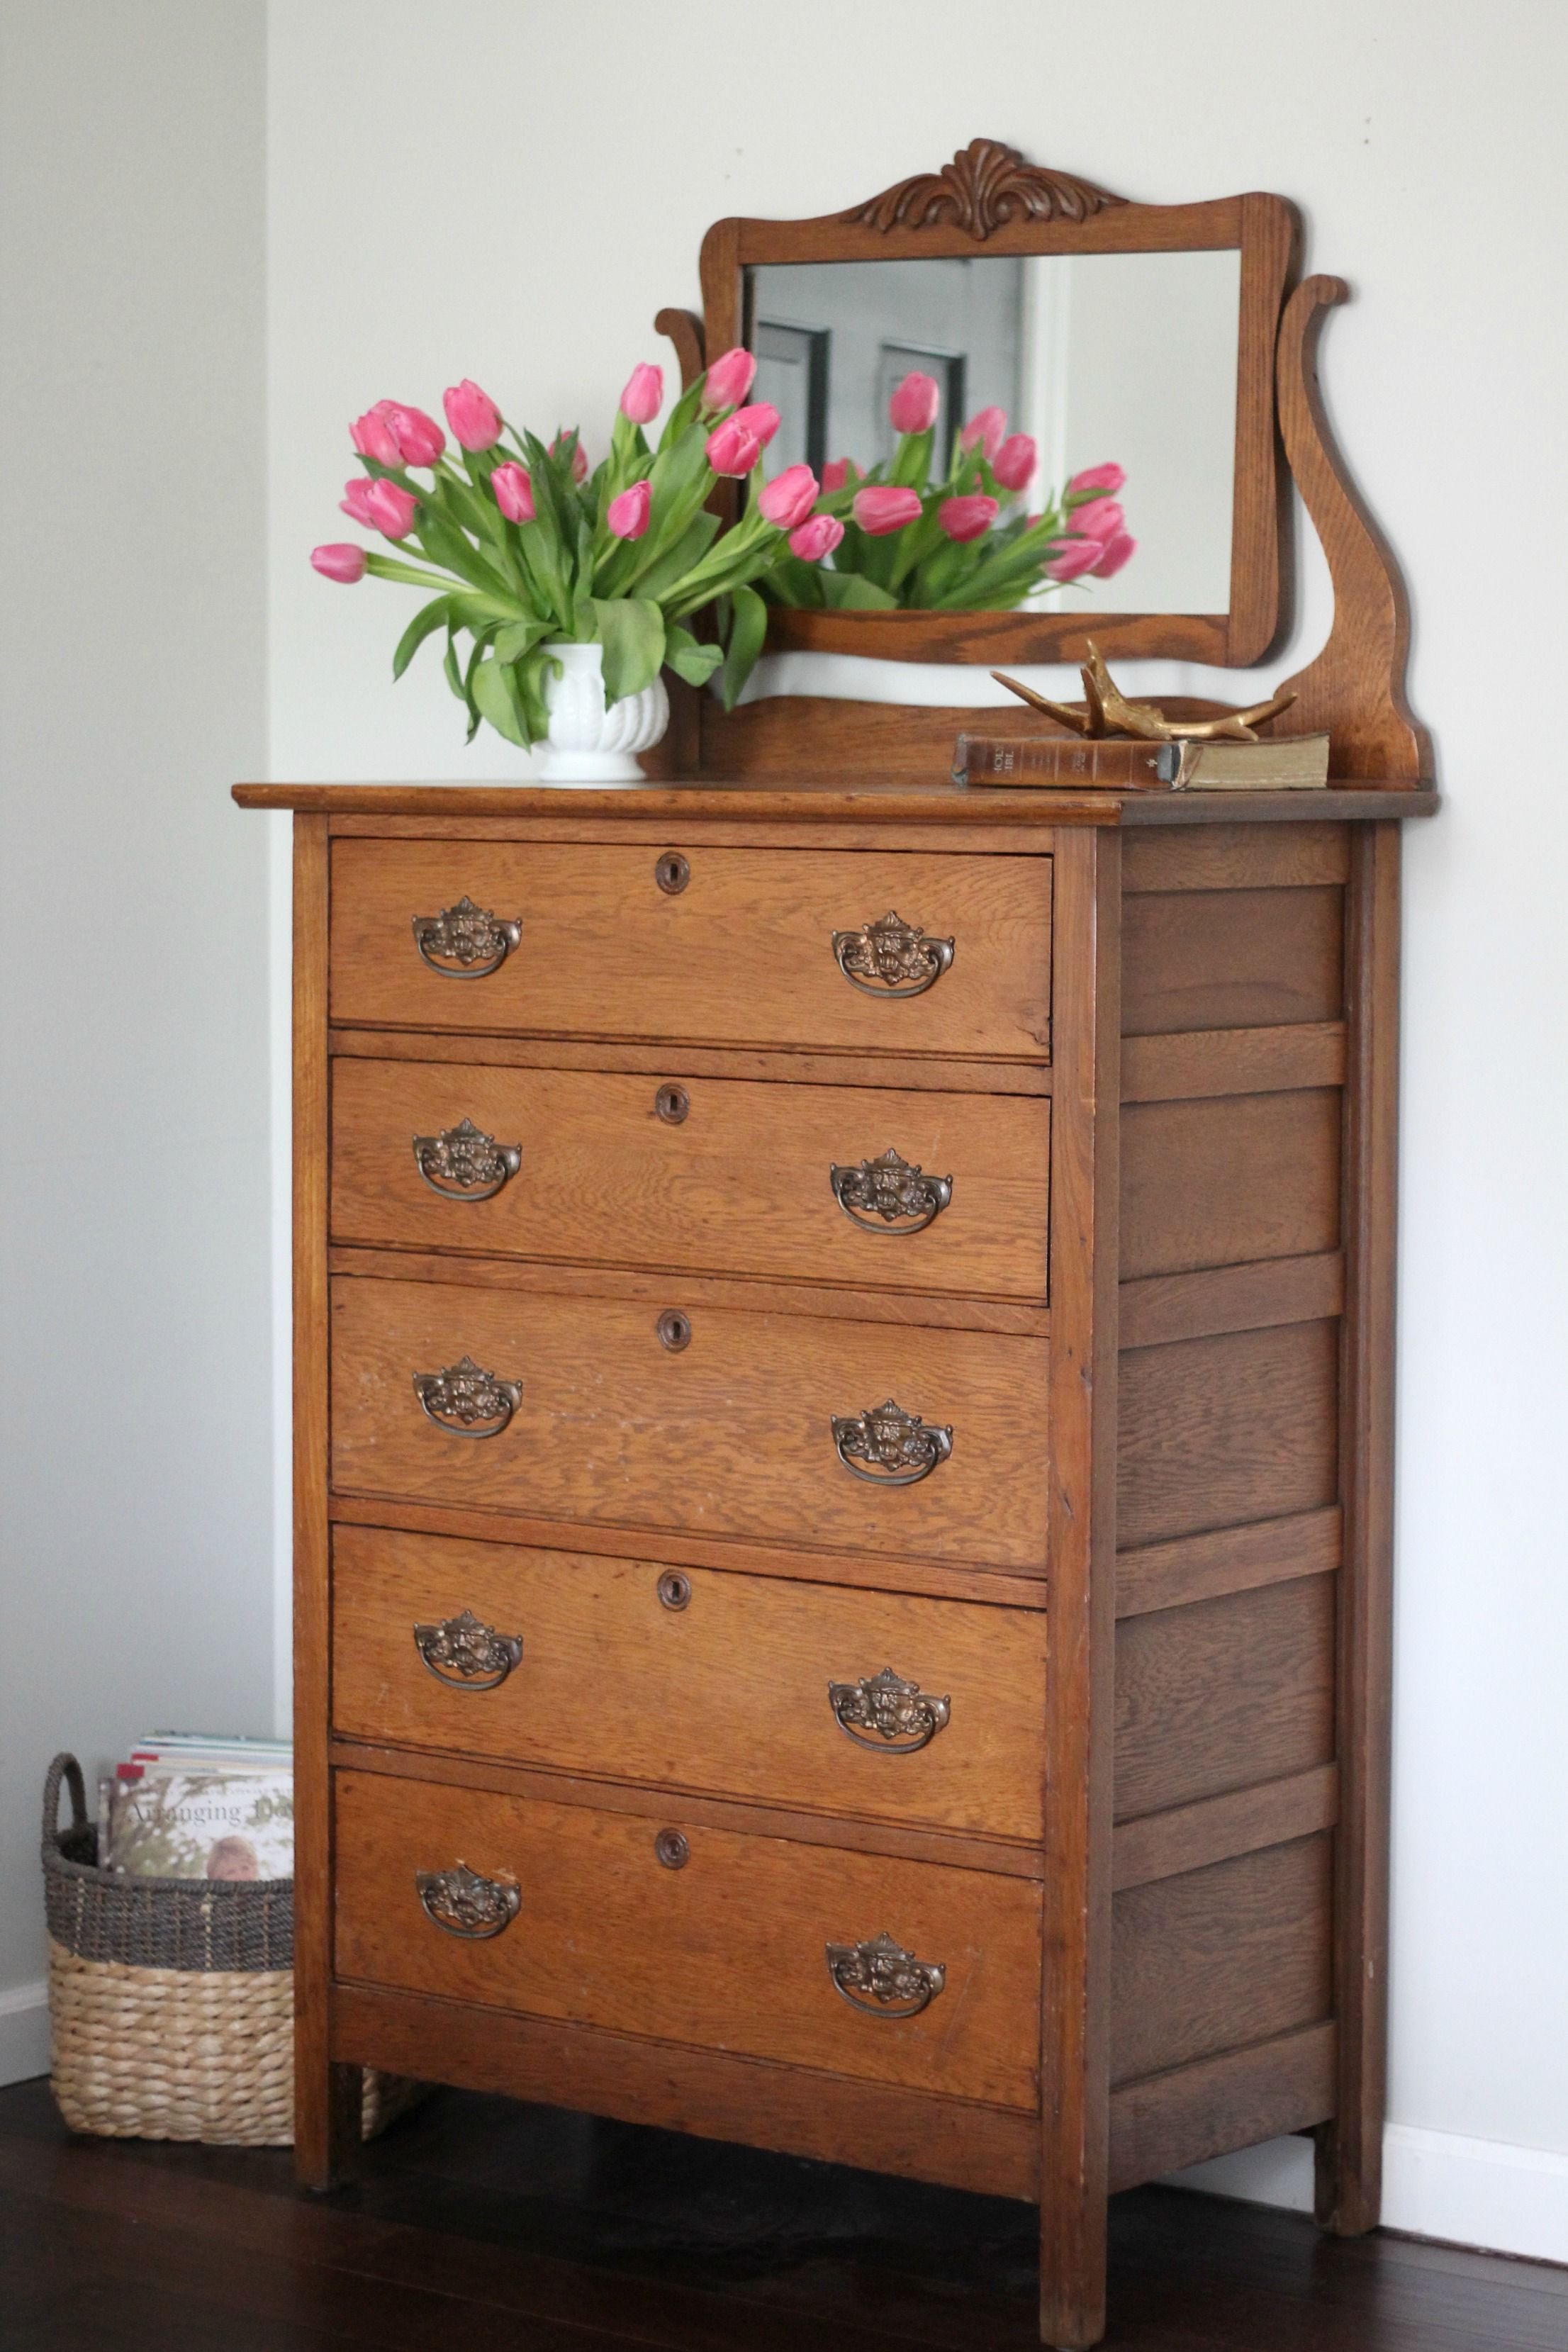 Antique Oak Bedroom Furniture Lovely the Latest Addition to Our Colonial with Images